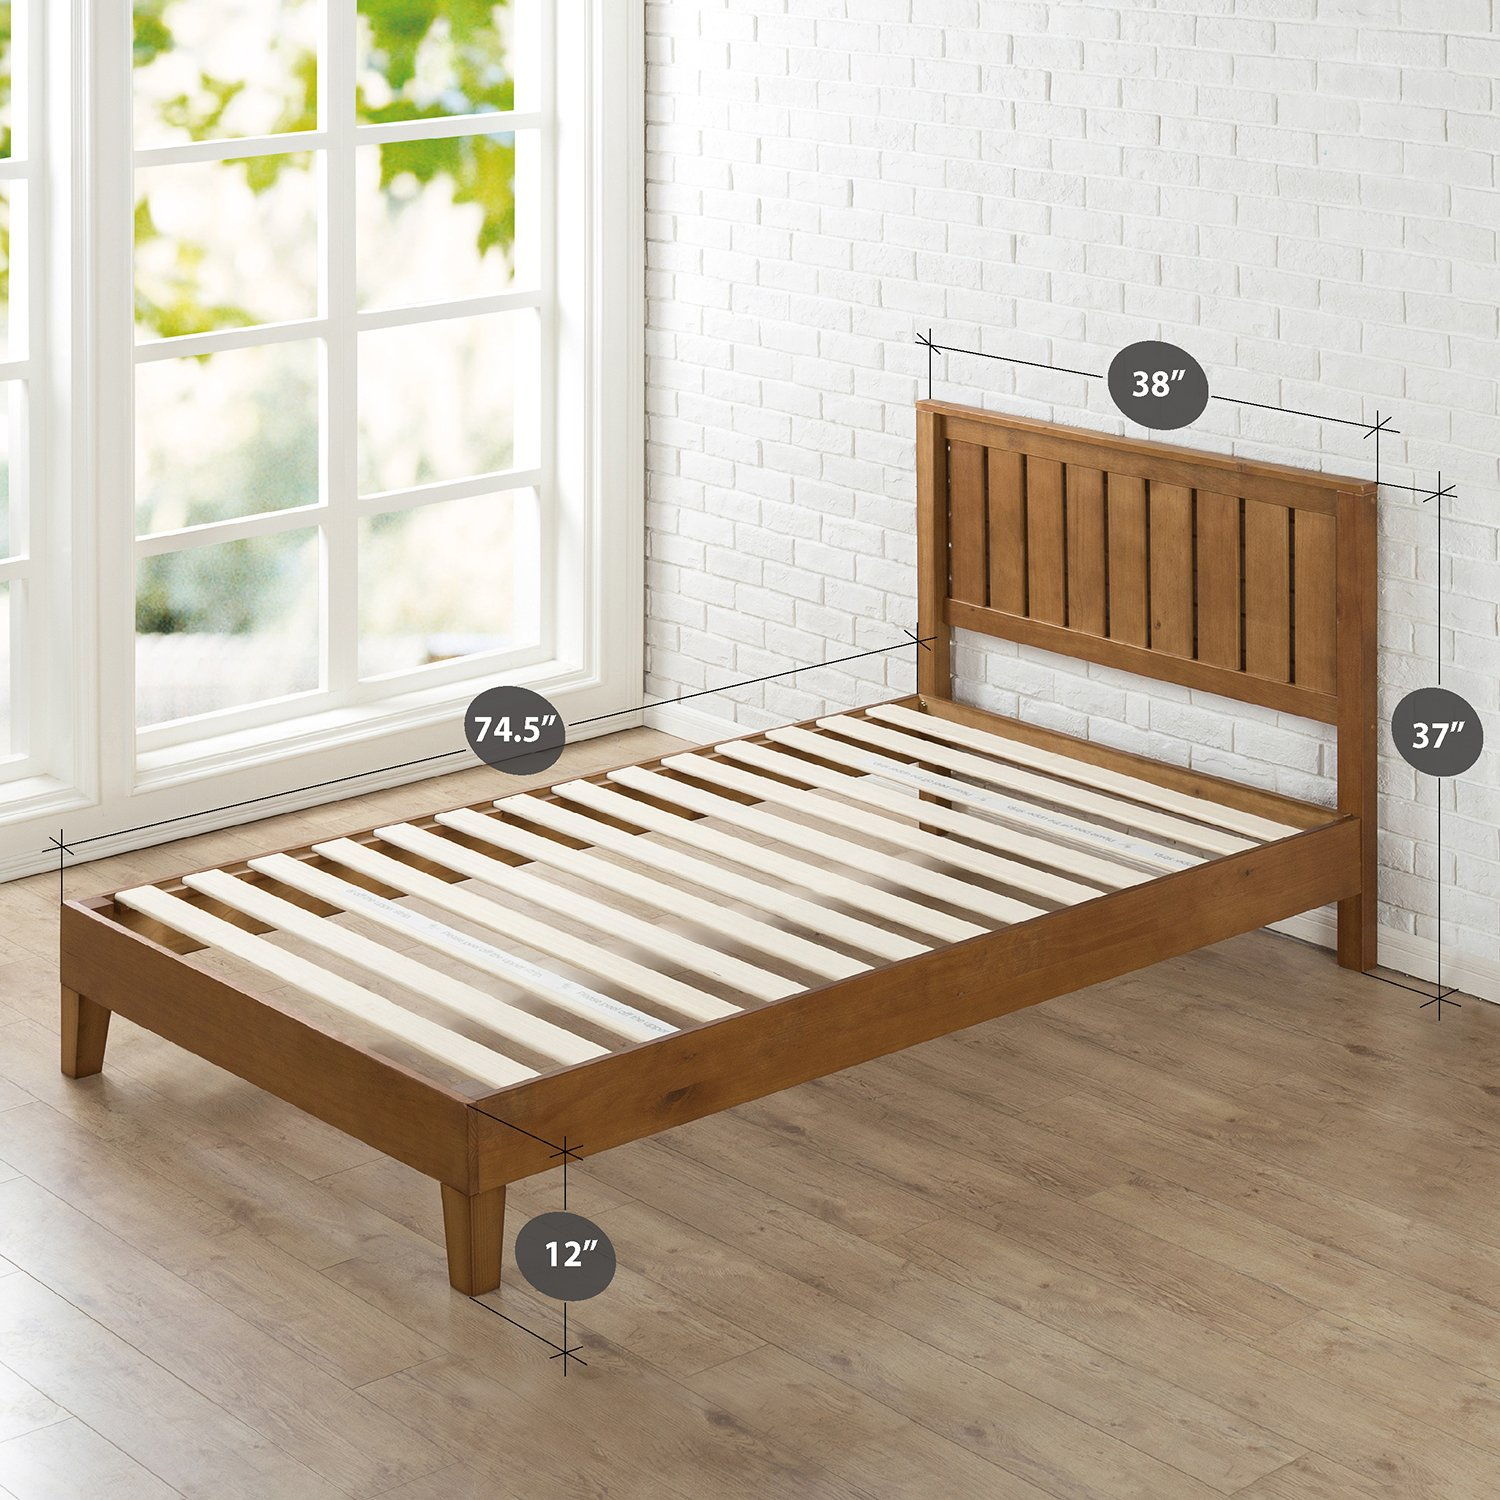 Zinus 12 Inch Deluxe Wood Platform Bed with Headboard / No Box Spring Needed / Wood Slat Support / Rustic Pine Finish, Twin by Zinus (Image #2)